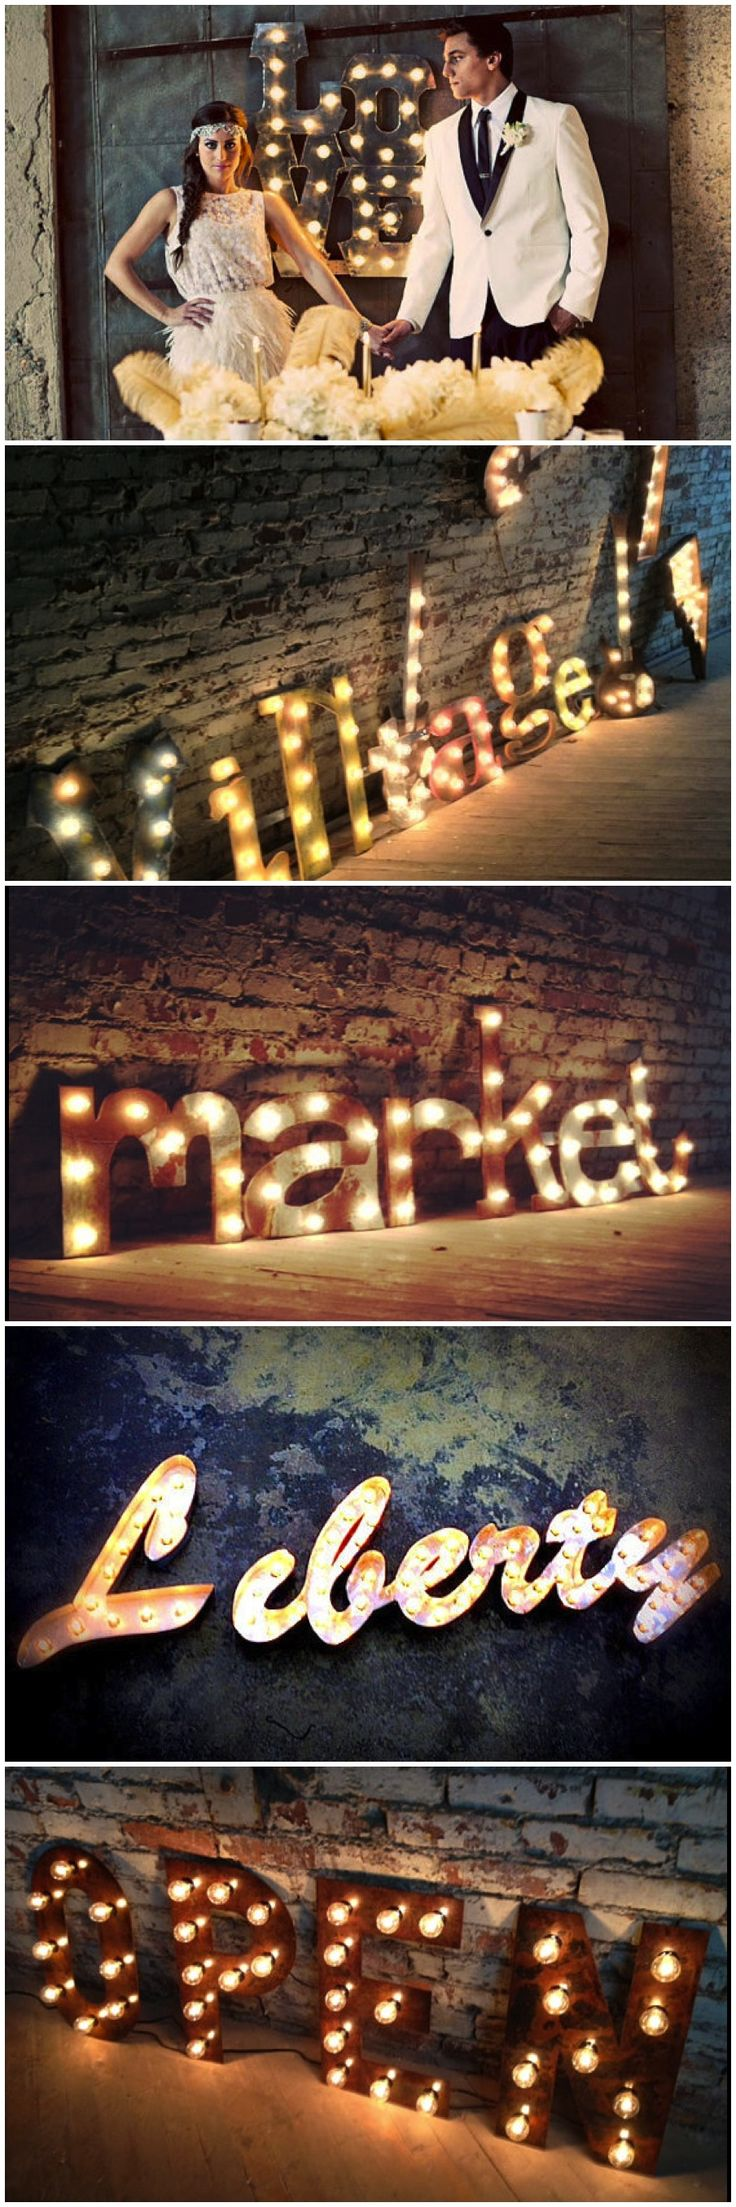 letter light signs. If I had a large warehouse apartment I'd have one of these